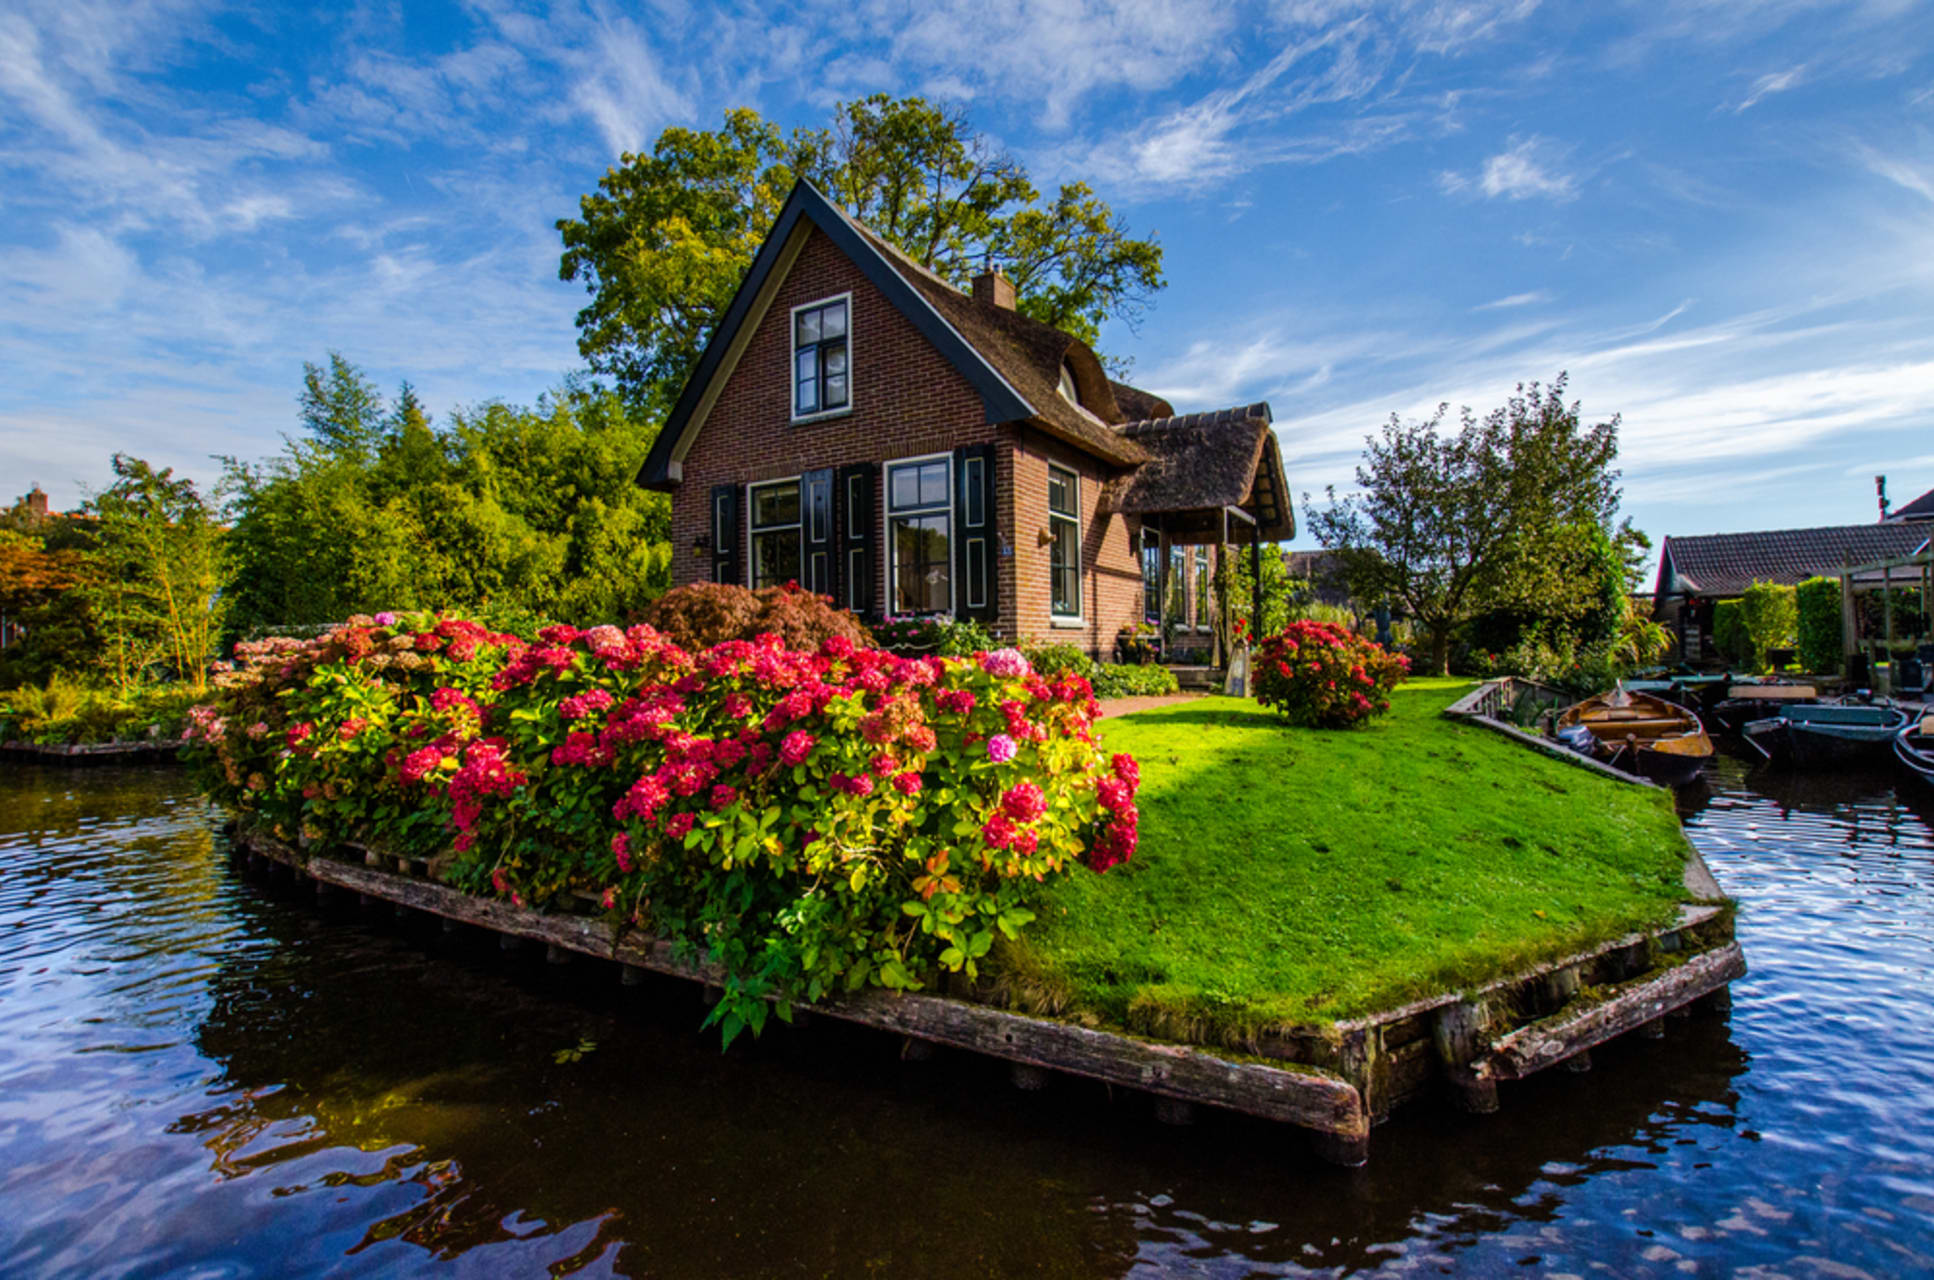 Giethoorn - Visit Giethoorn, The Rural 'Venice of the North'